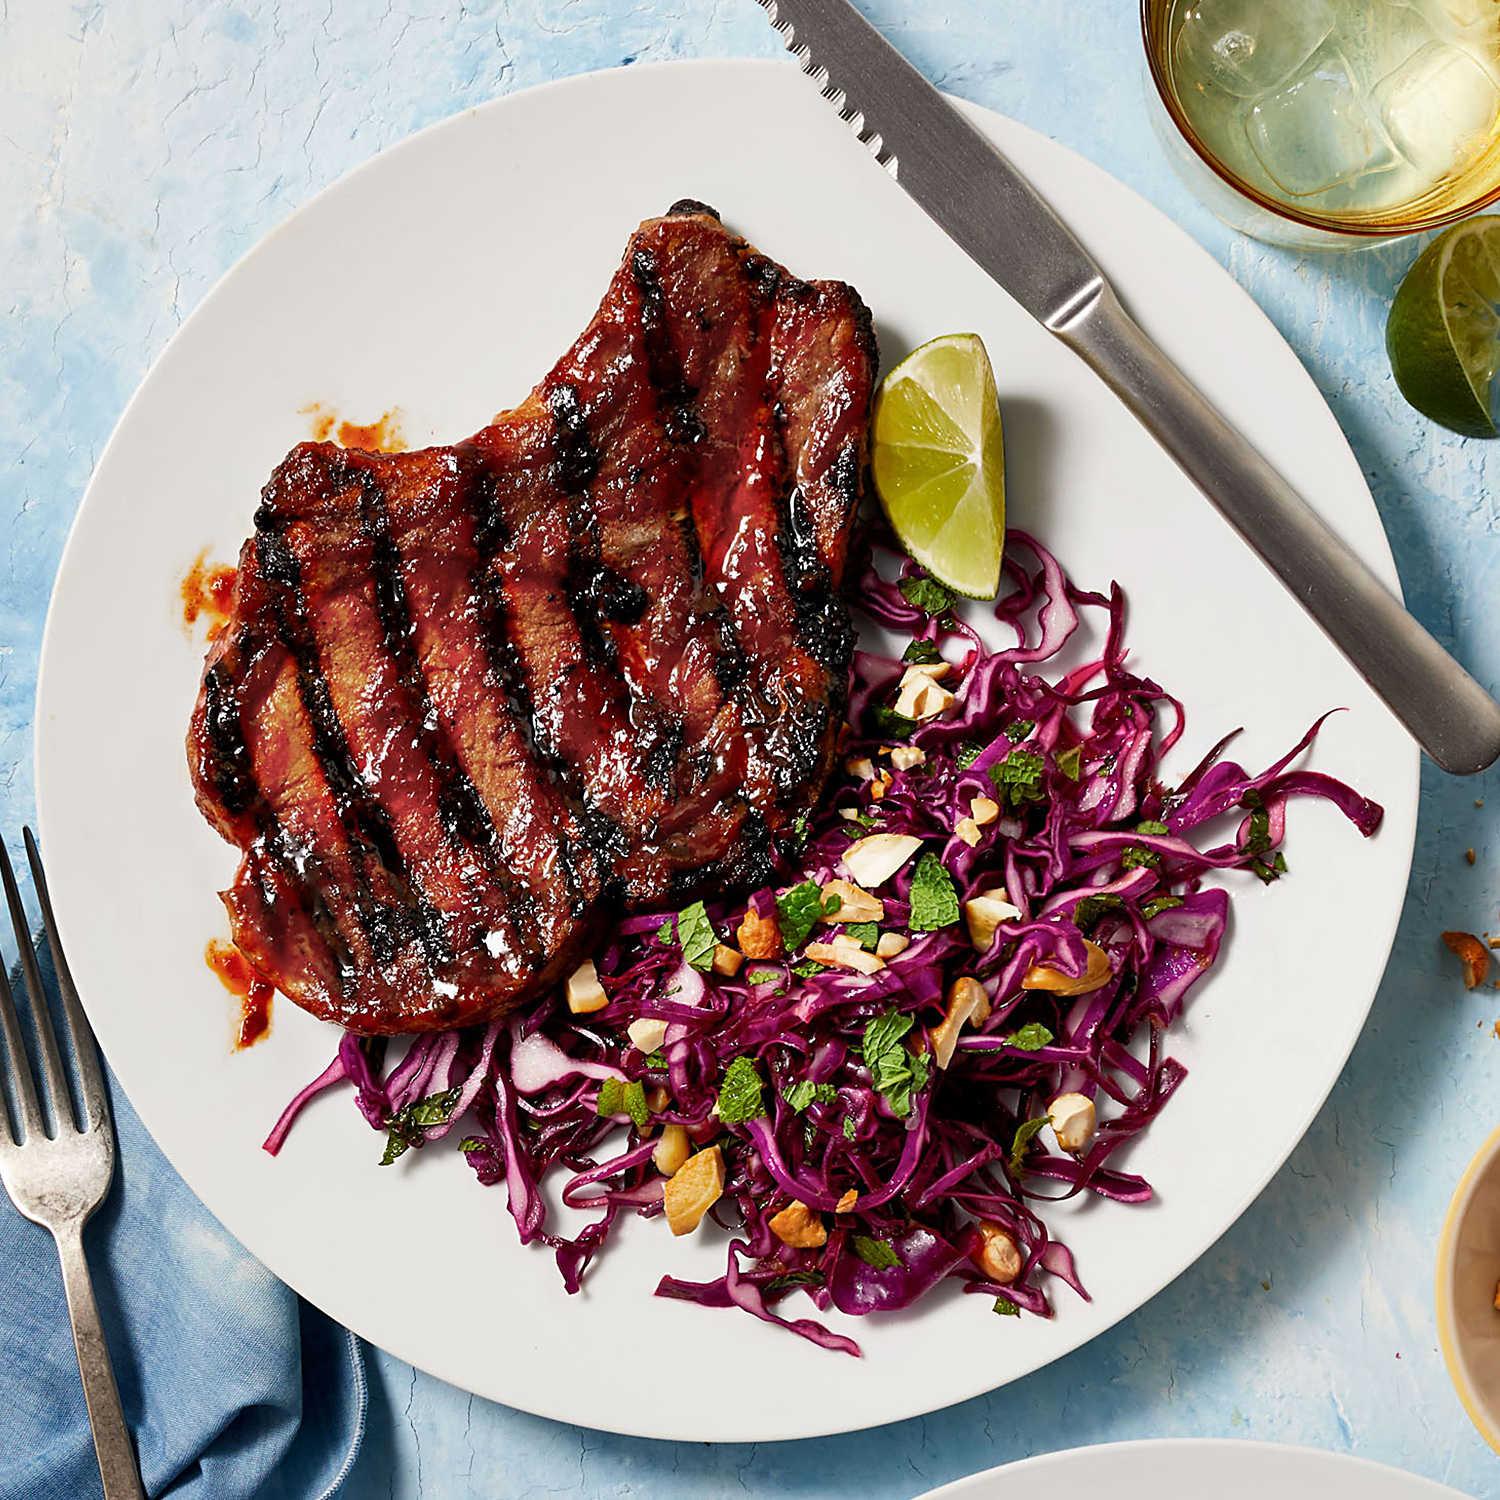 Gochujang Pork Chops with Red Cabbage, Cashew & Mint Slaw